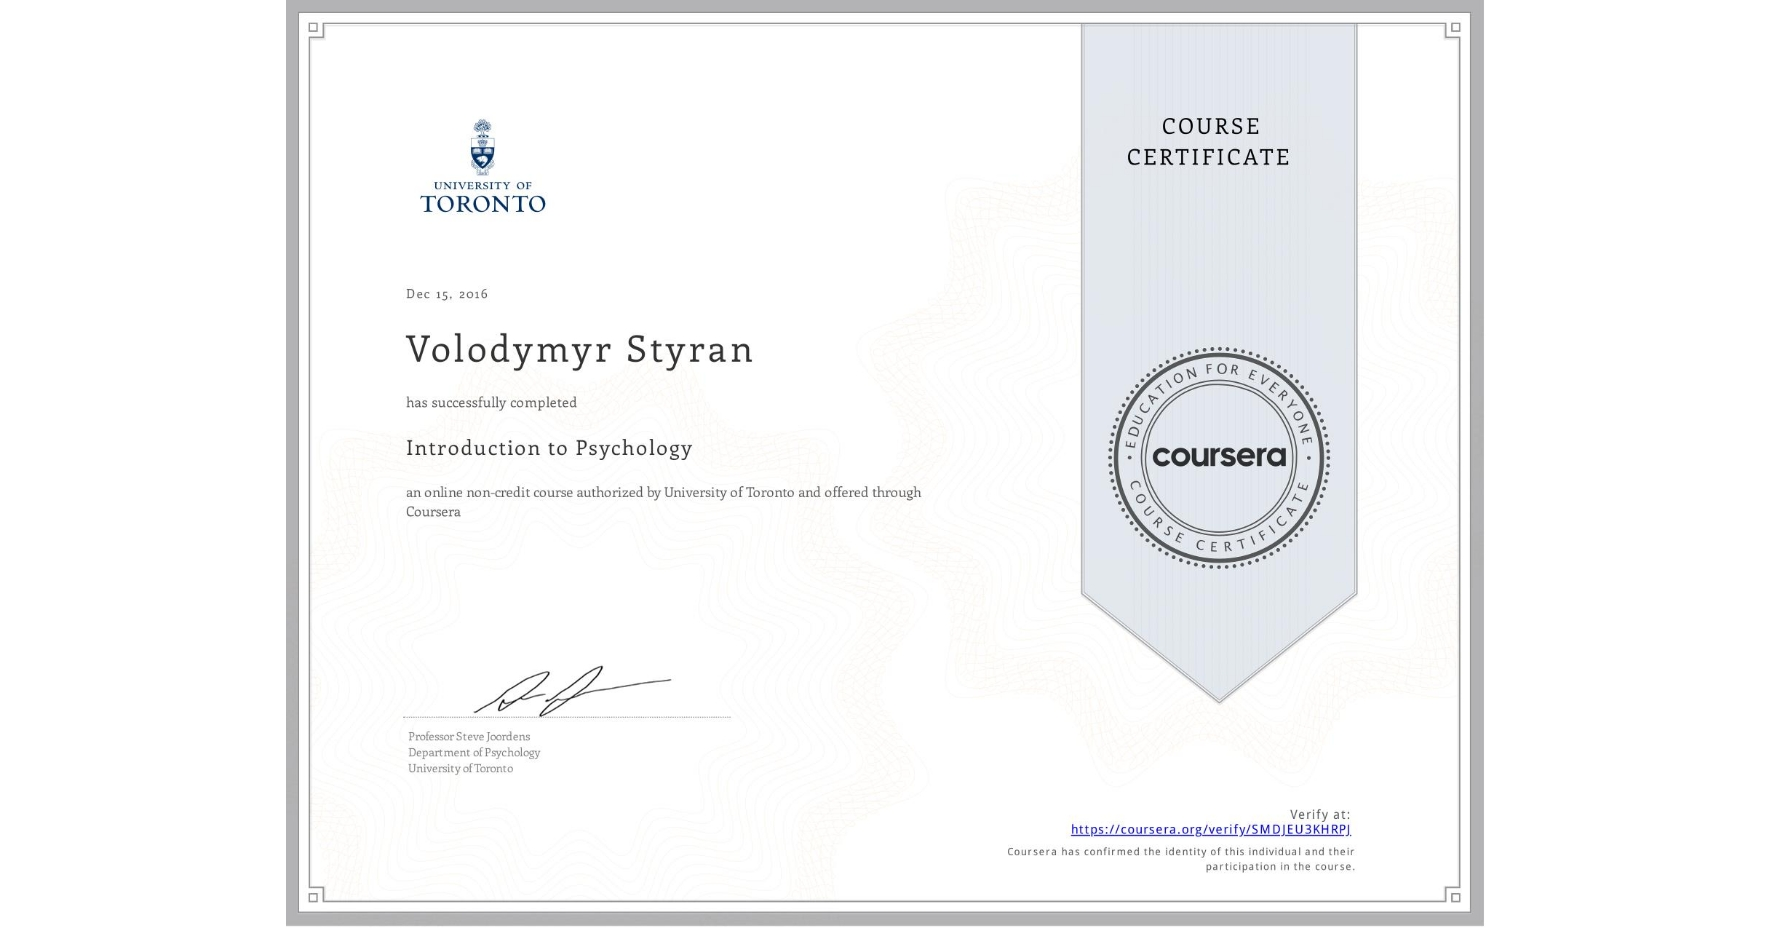 View certificate for Volodymyr Styran, Introduction to Psychology, an online non-credit course authorized by University of Toronto and offered through Coursera